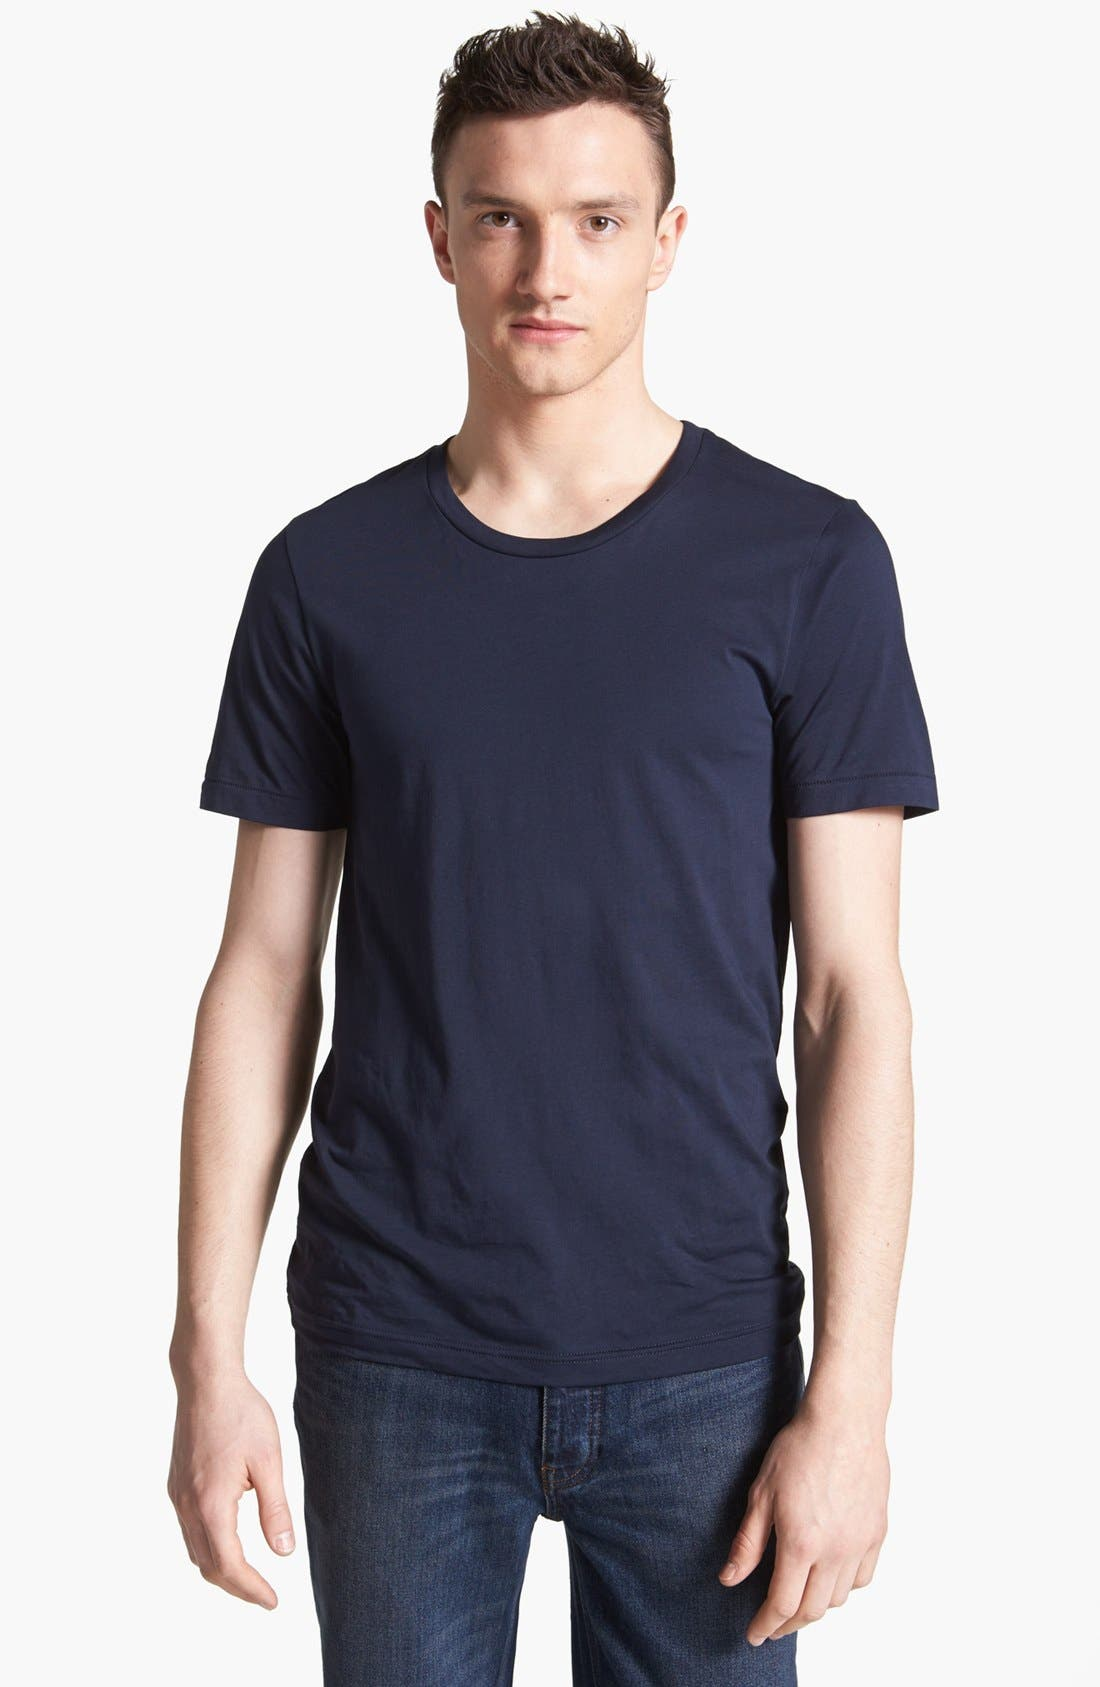 Alternate Image 1 Selected - BLK DNM 'T-Shirt 3' Pima Cotton T-Shirt